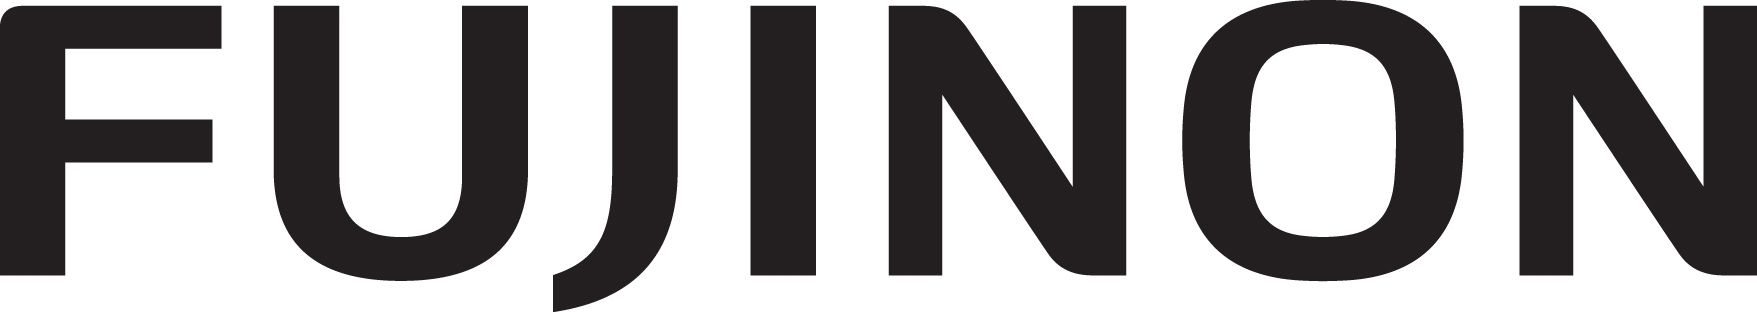 fujinon-logo---black-nov-2010